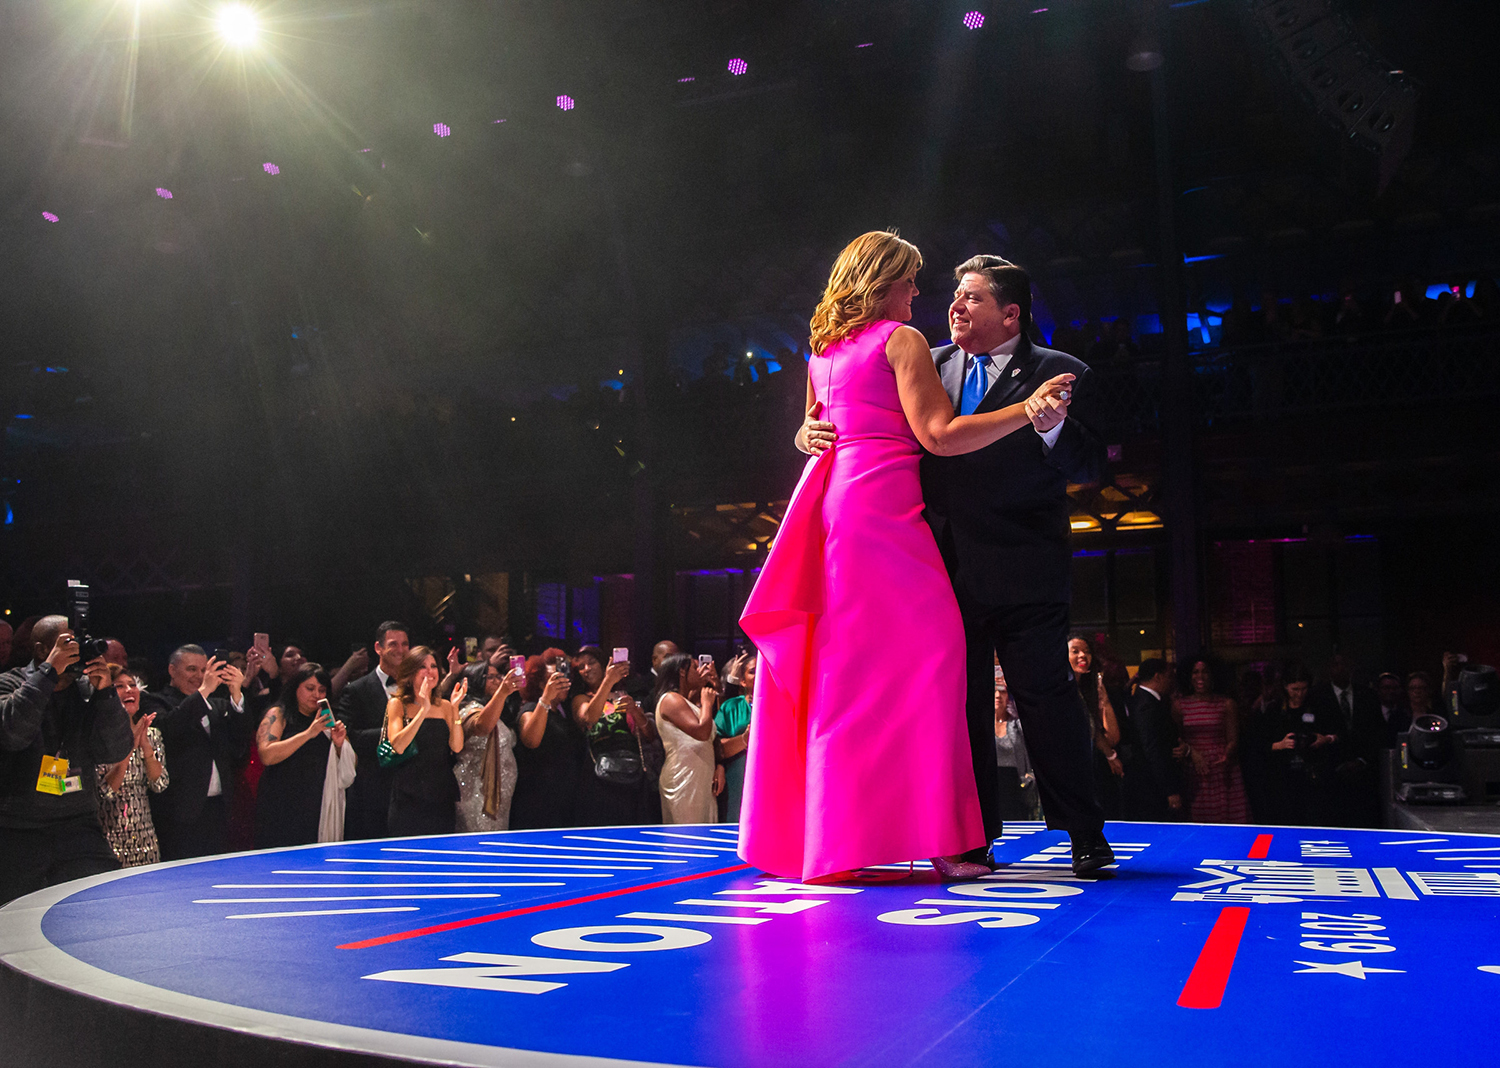 """Gov. J.B. Pritzker dances with his wife, M.K. Pritzker, during their first dance to """"How Sweet It Is (To Be Loved By You)"""" at the Inaugural Ball at the Exposition Building on the Illinois State Fairgrounds, Monday, Jan. 14, 2019, in Springfield, Ill. [Justin L. Fowler/The State Journal-Register]"""